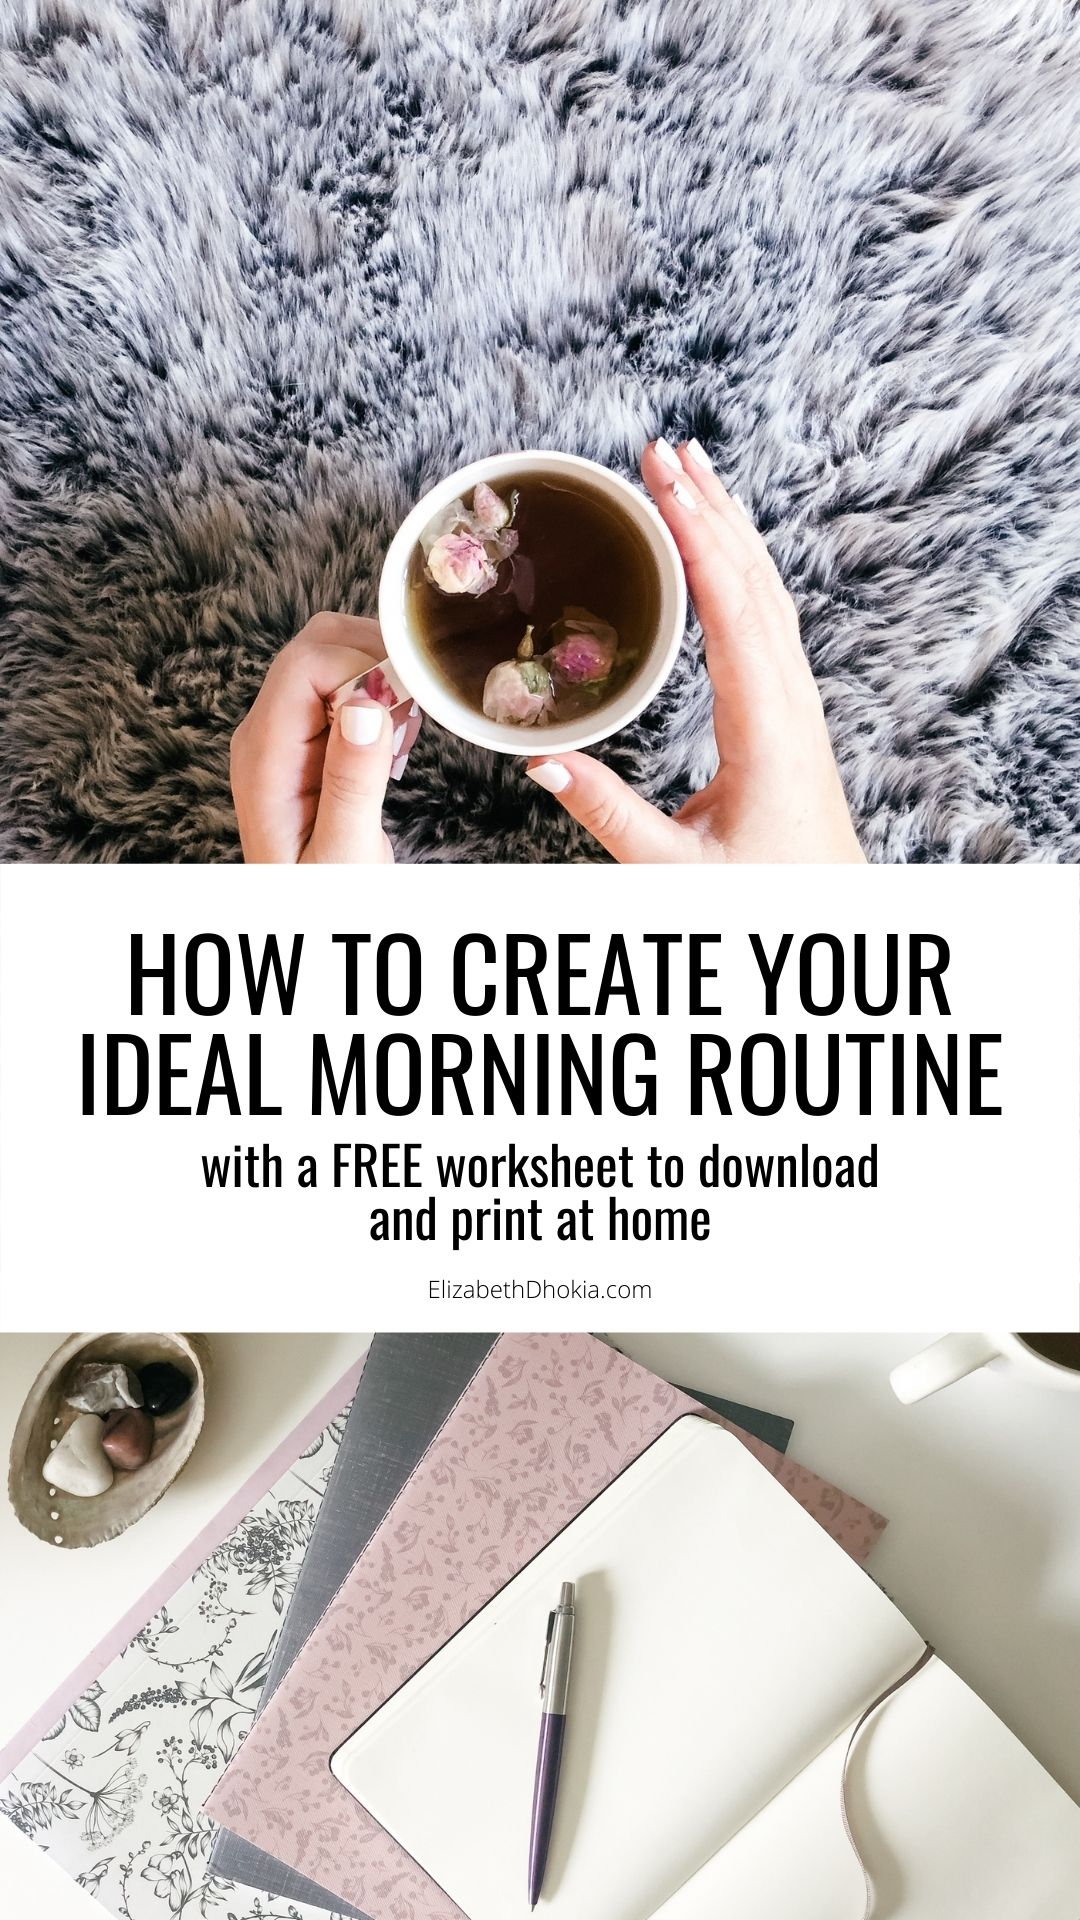 How to create your ideal morning routine